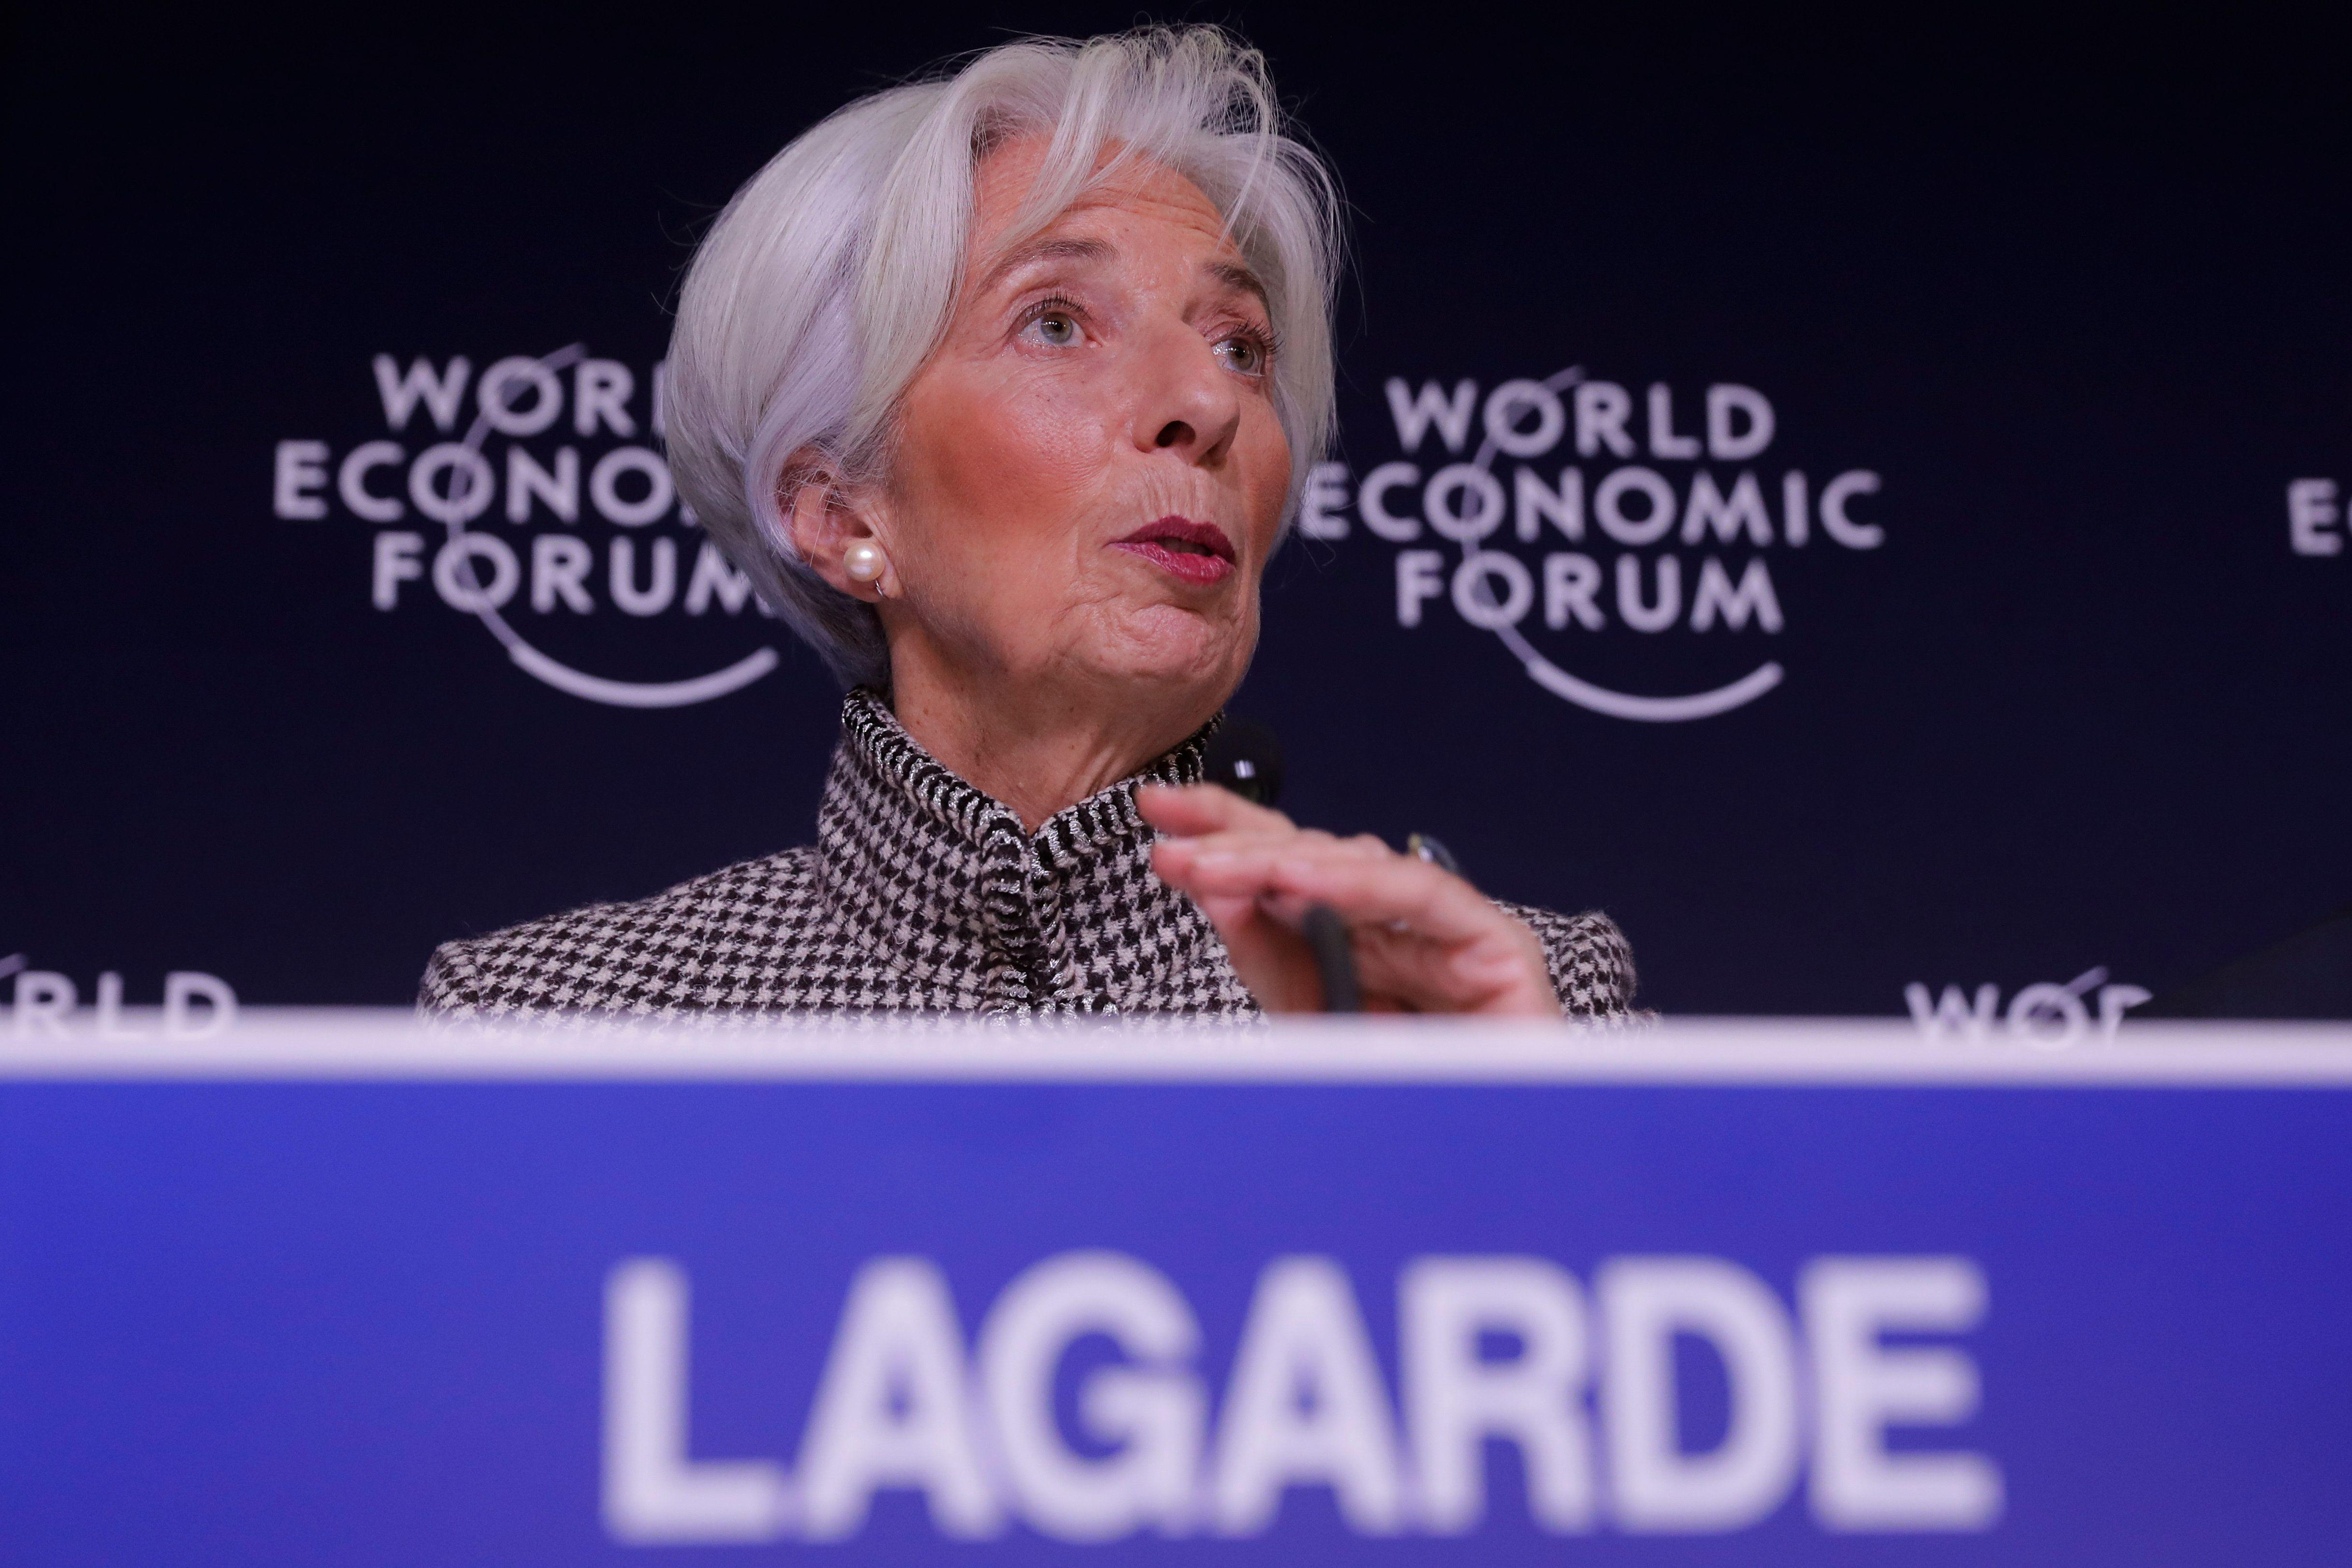 Lagarde: We see risk on the horizon, and the horizon is getting closer to us